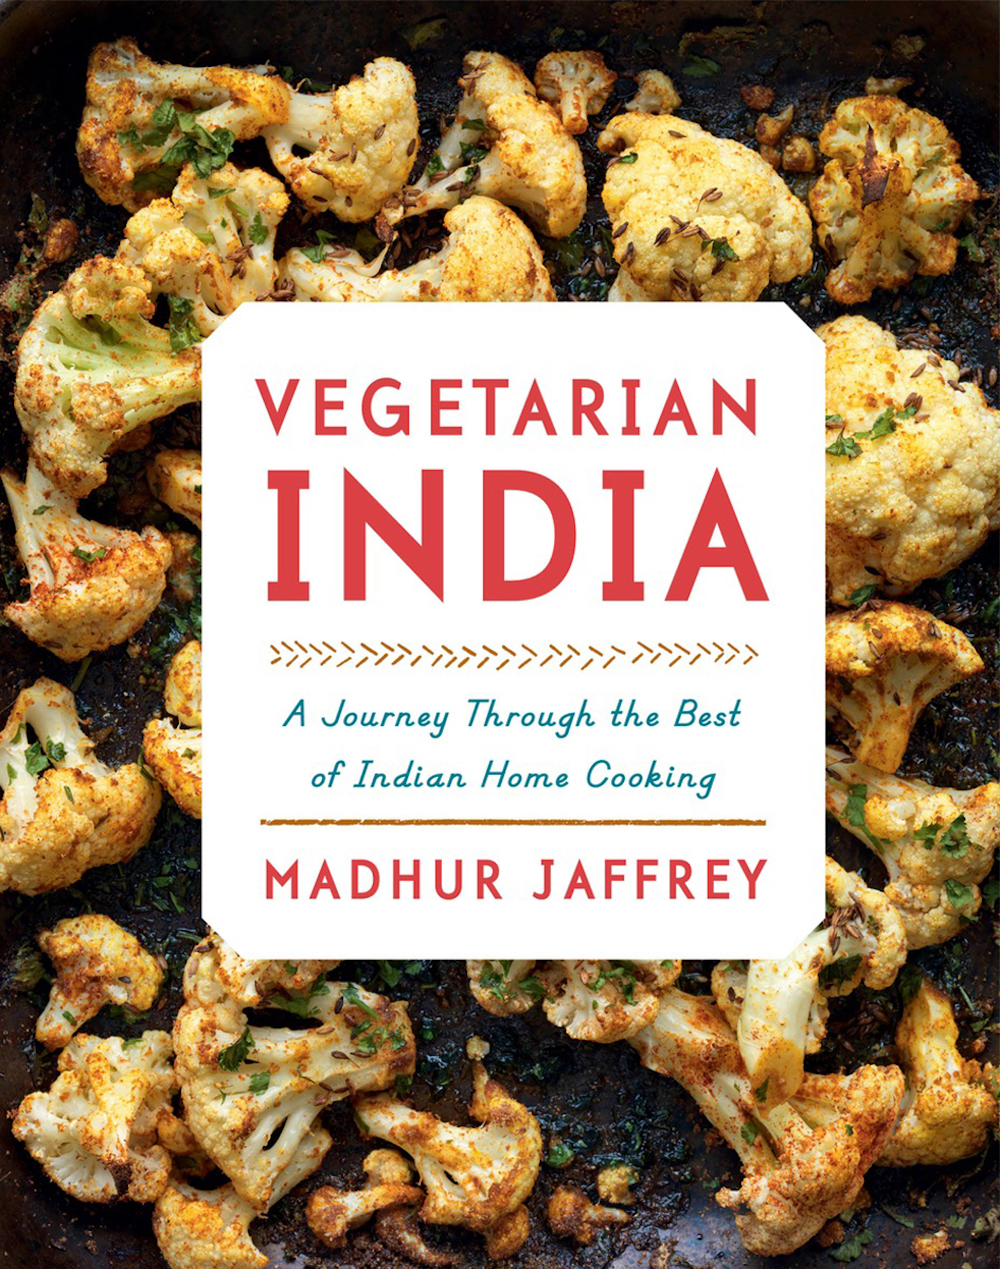 Vegetarian India by Madhur Jaffrey, Indian cooking cook book ideas